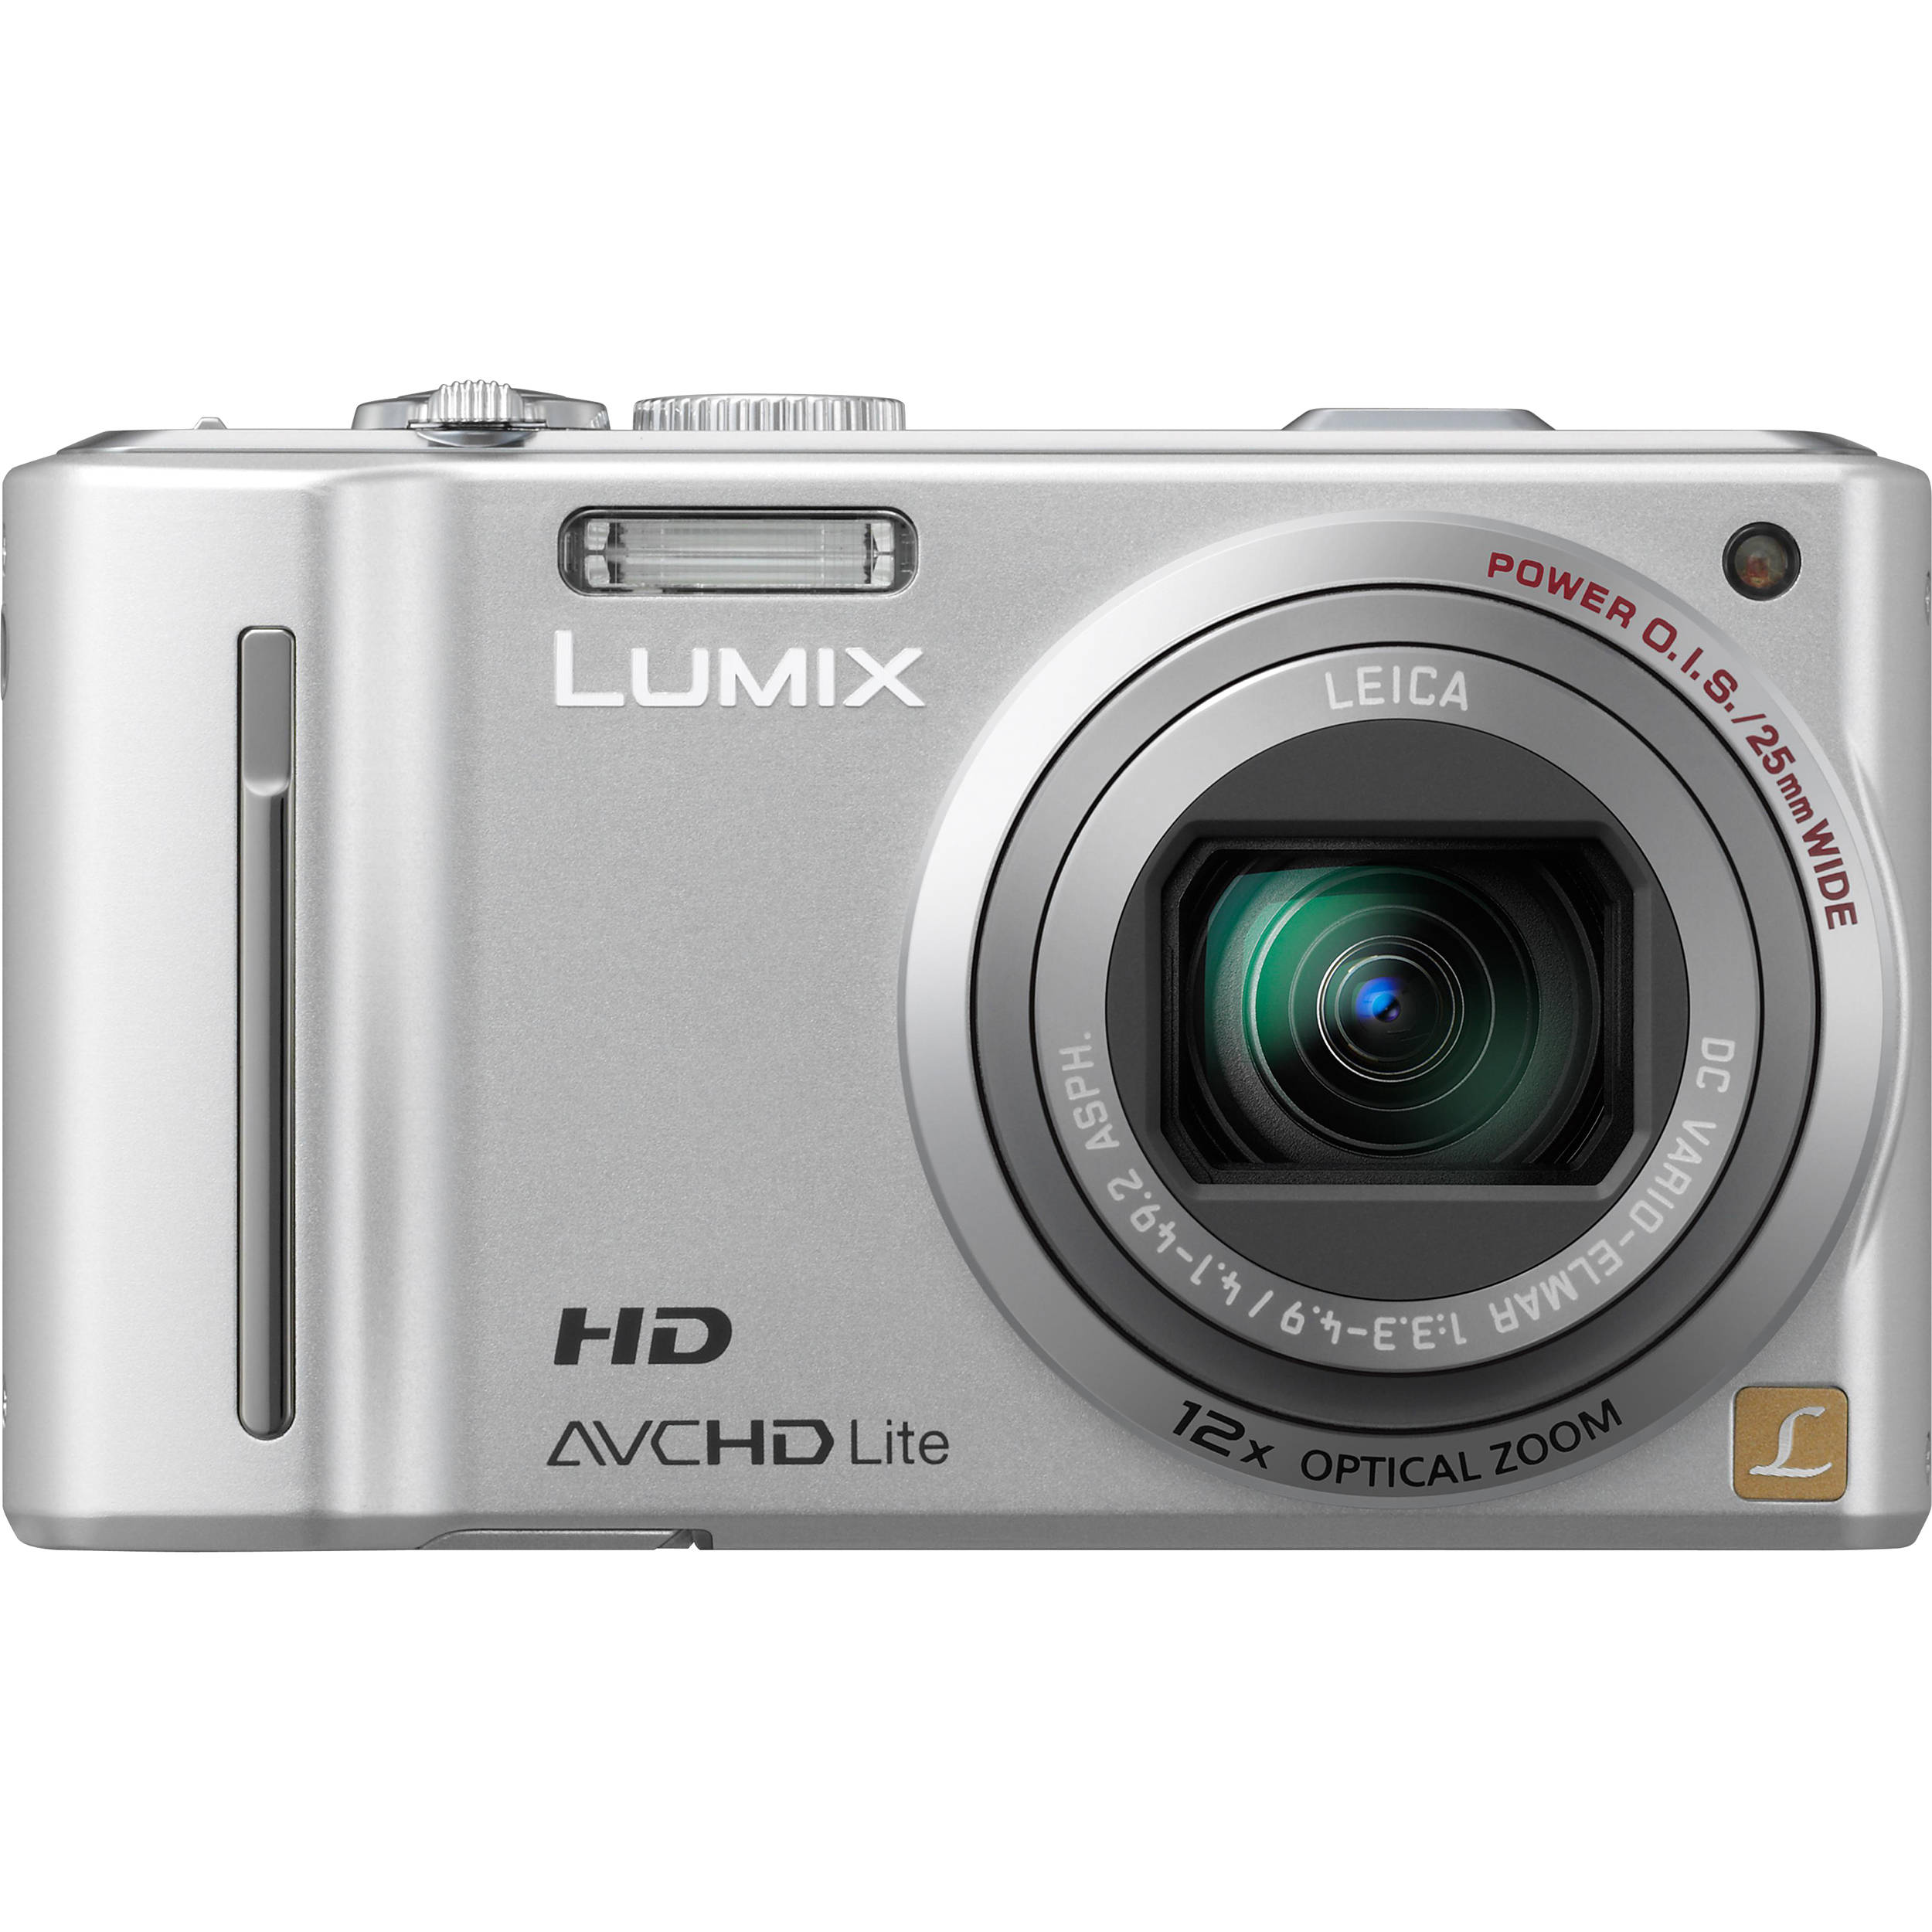 Panasonic LUMIX DMC-ZS7 (Silver) Digital Camera DMC-ZS7S B&H